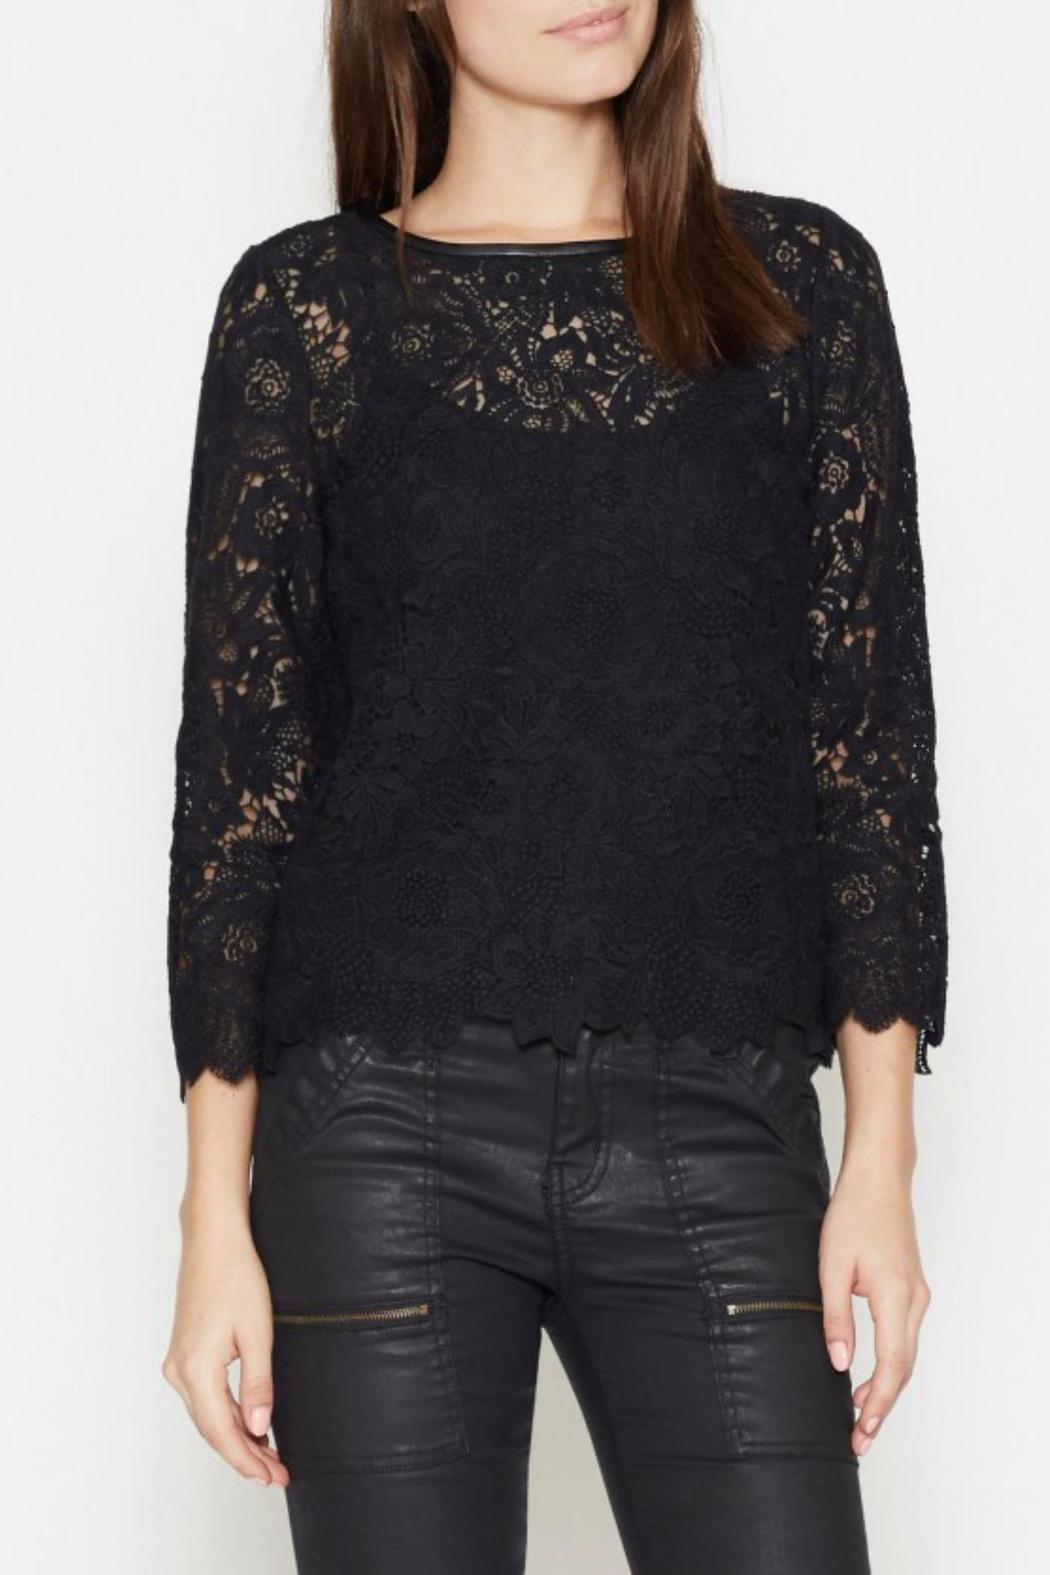 Joie Antonia Lace Top - Main Image